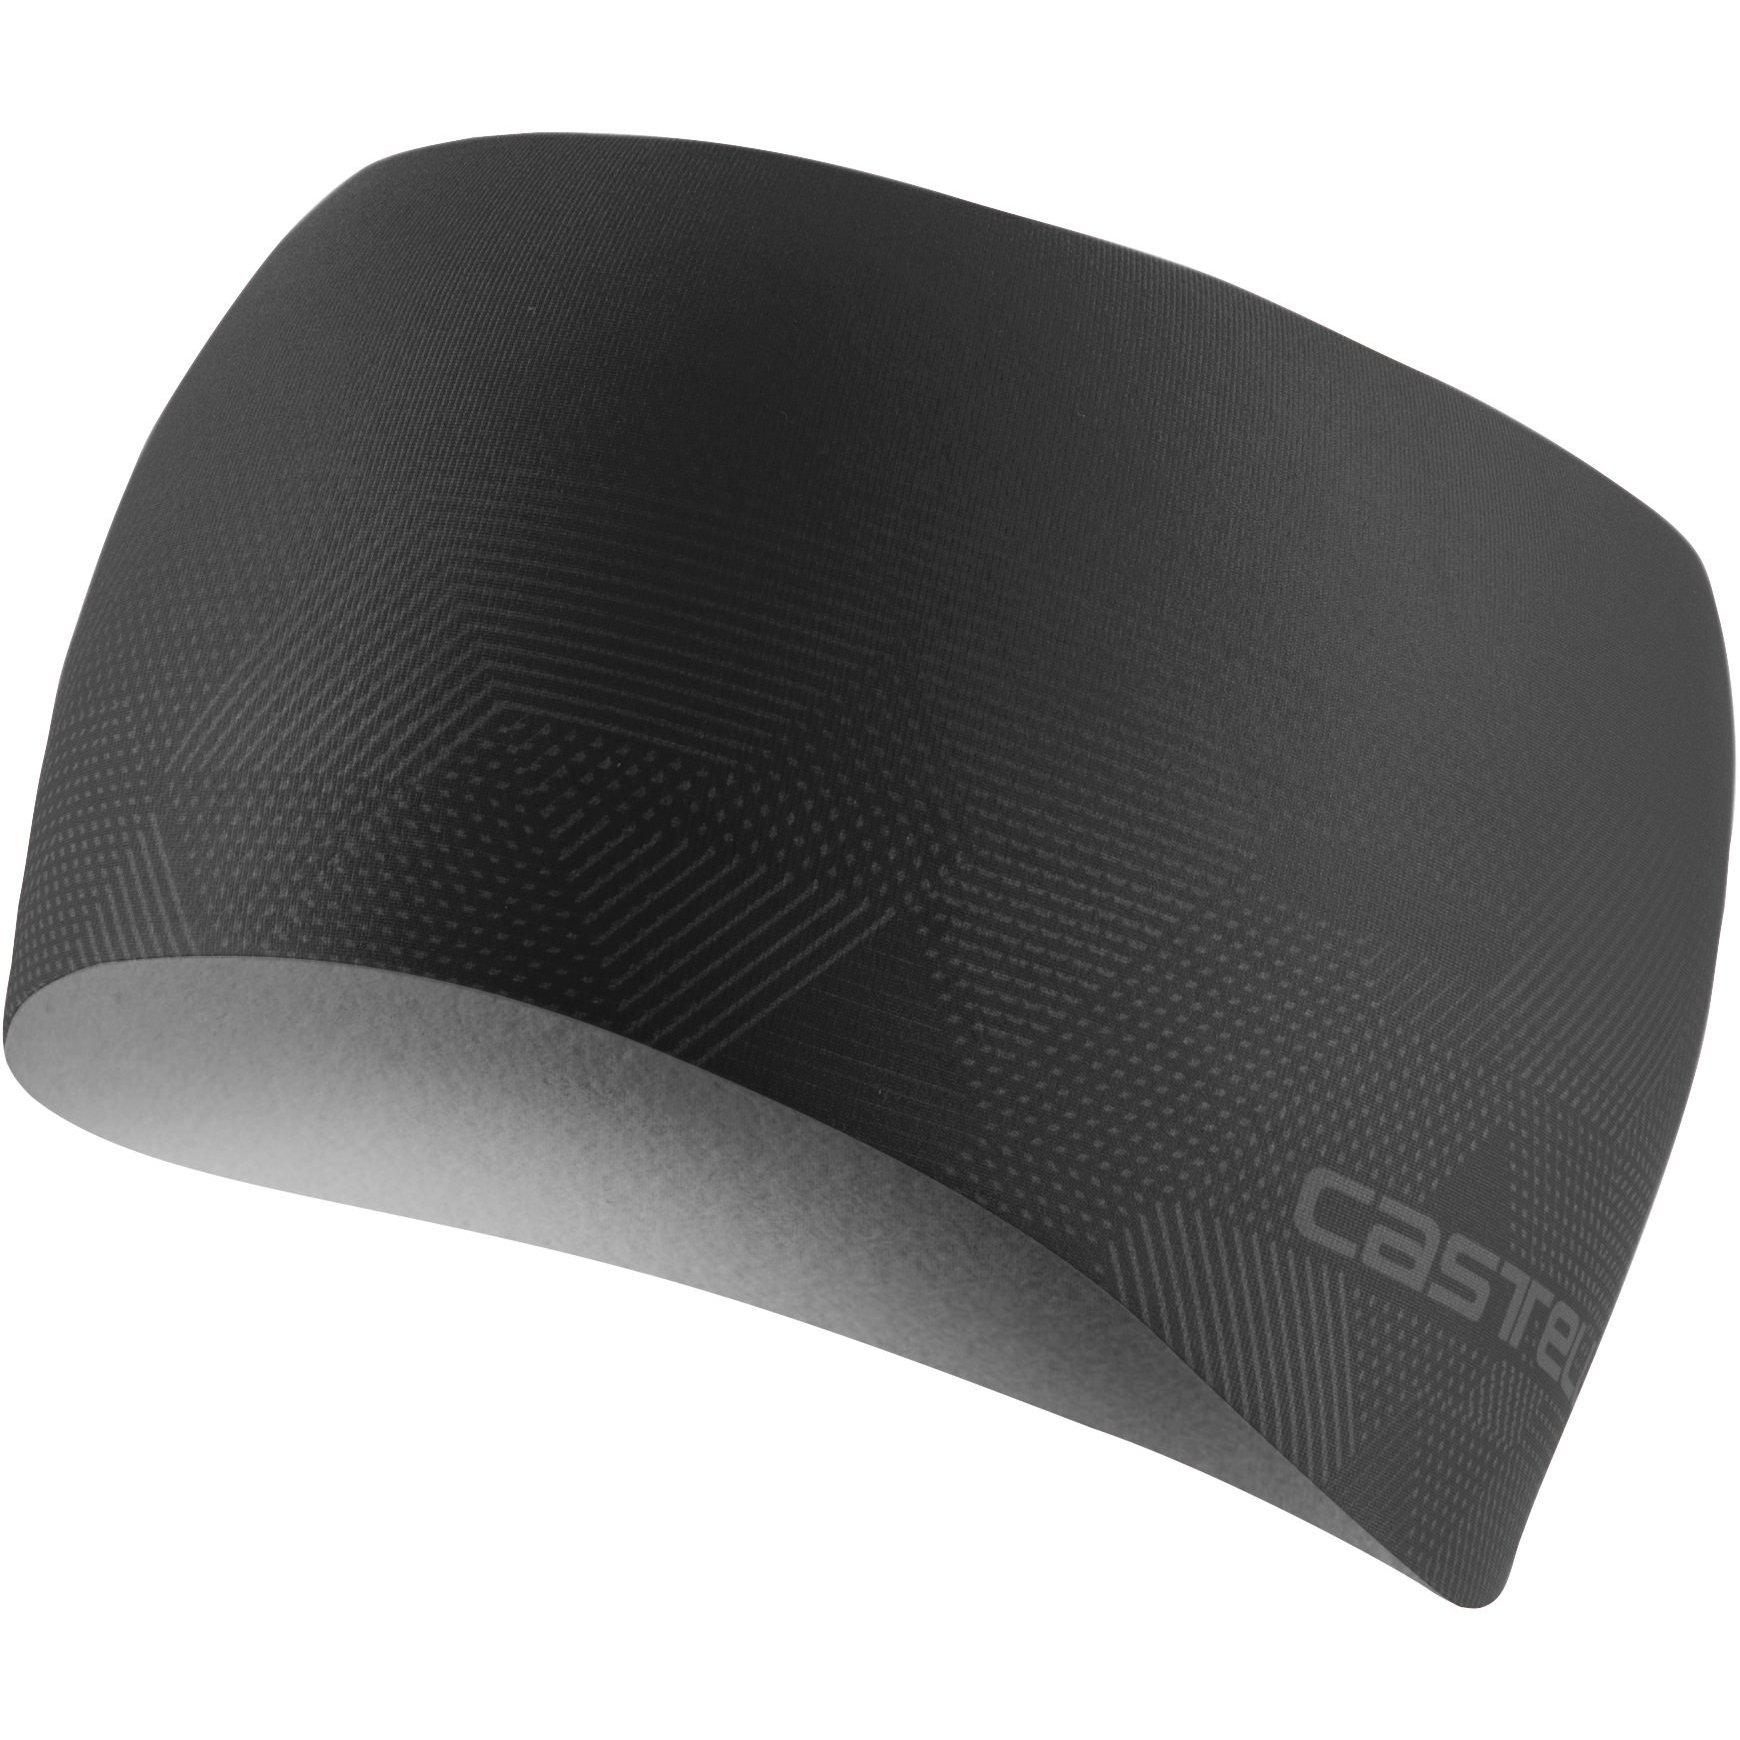 Castelli-Castelli Pro Thermal Headband-Light Black-UNI-CS205460858-saddleback-elite-performance-cycling